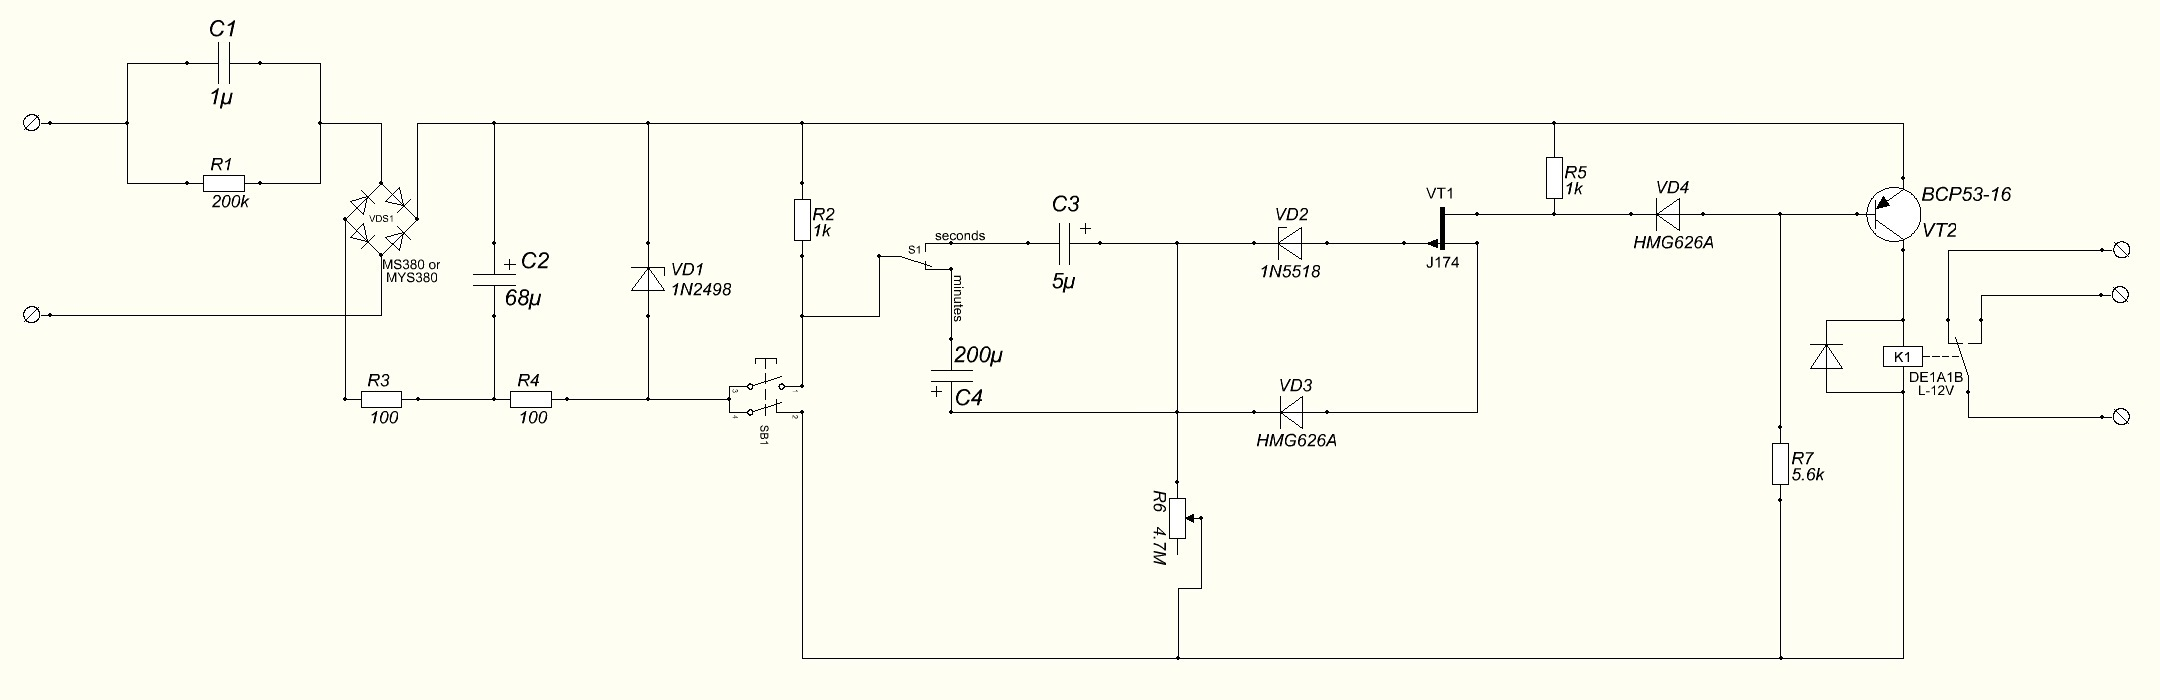 allen bradley relay wiring diagram wirdig wiring diagram for relay get image about wiring diagram